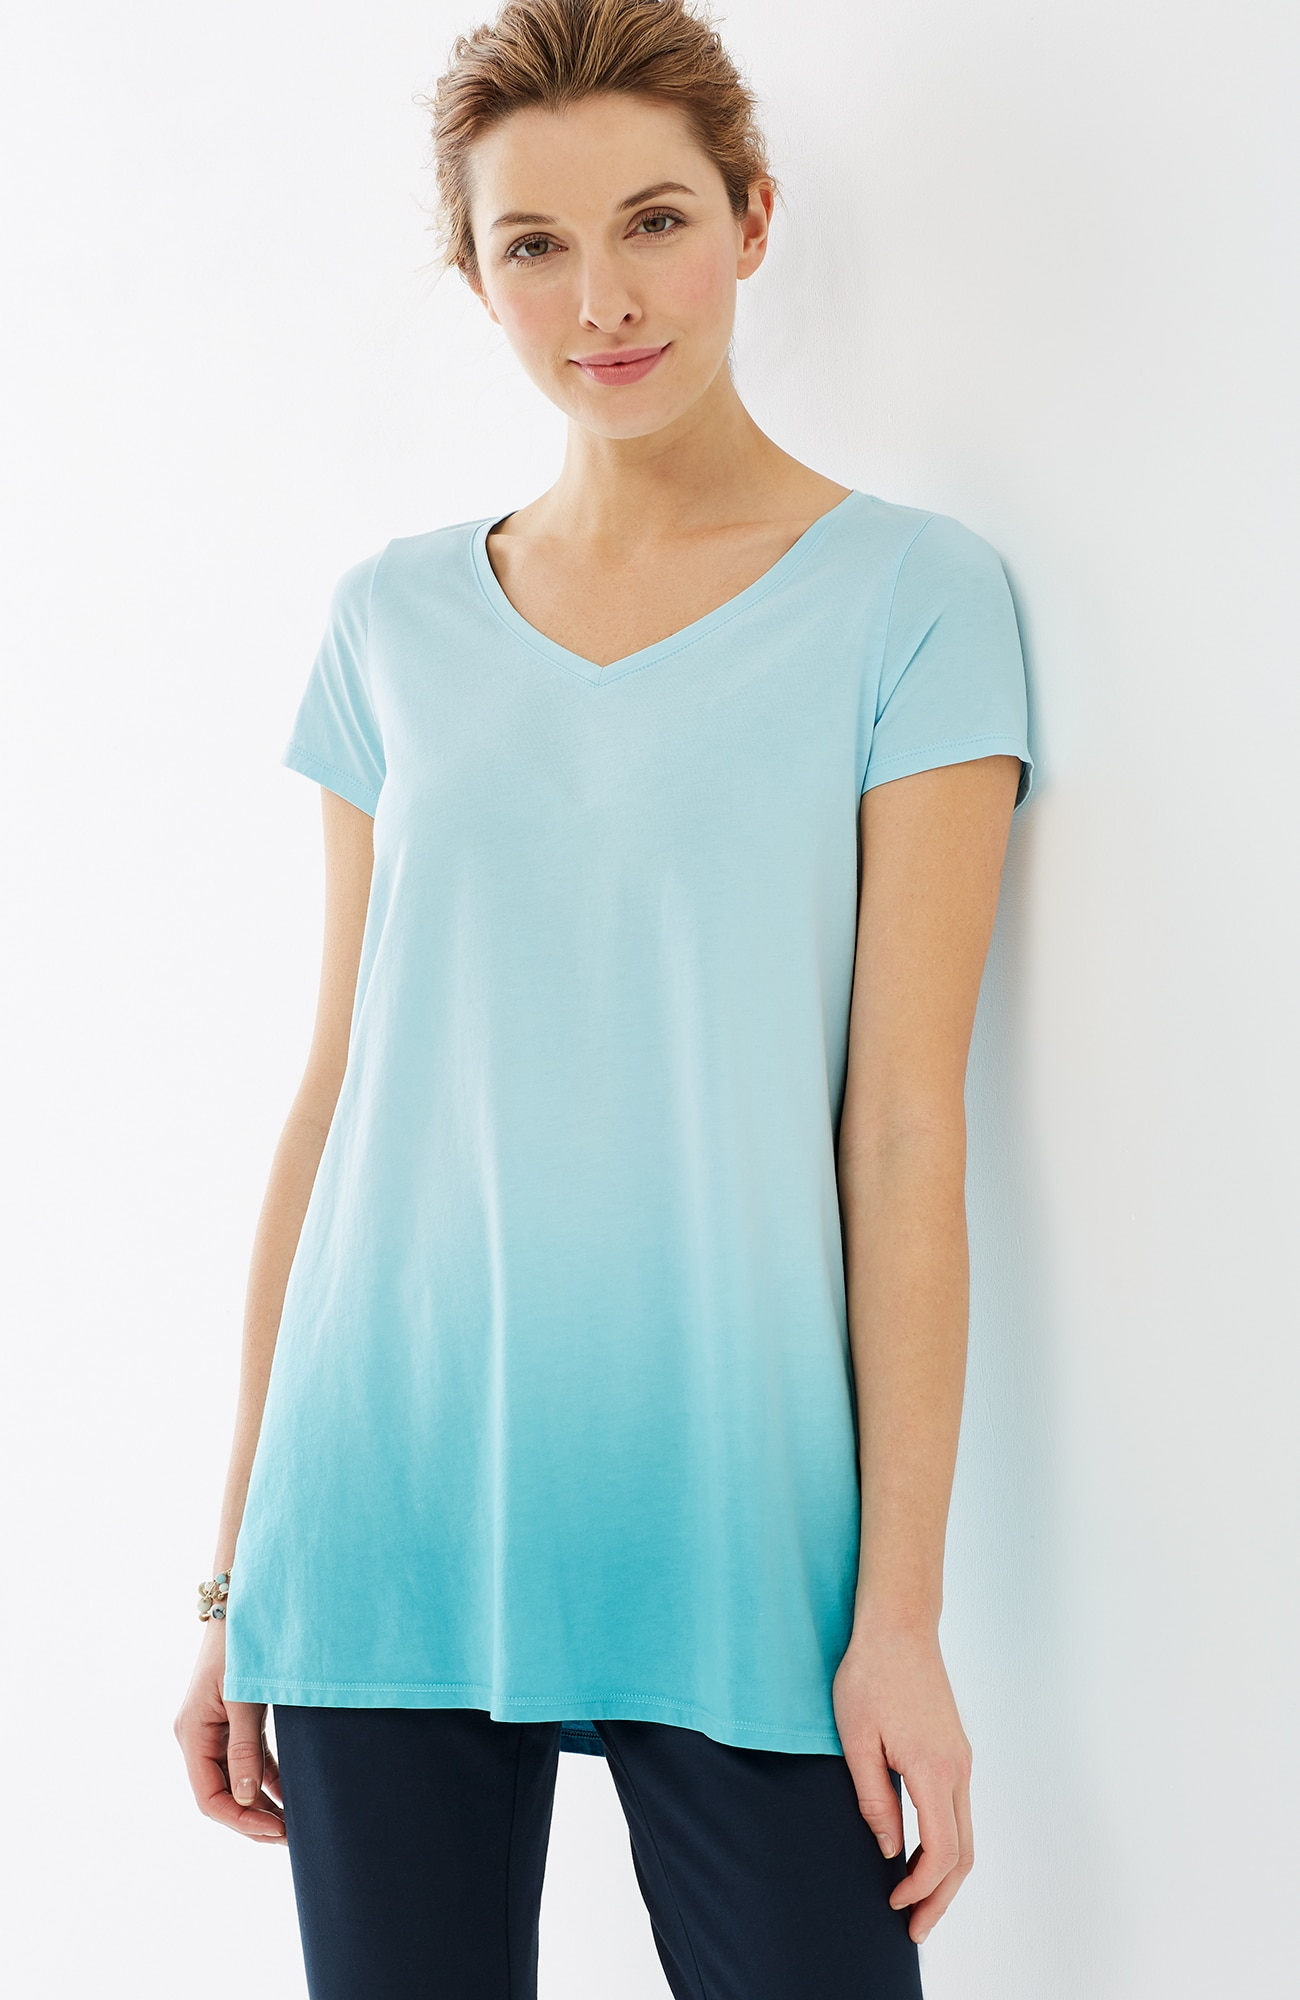 Pure Jill dip-dyed elliptical tee